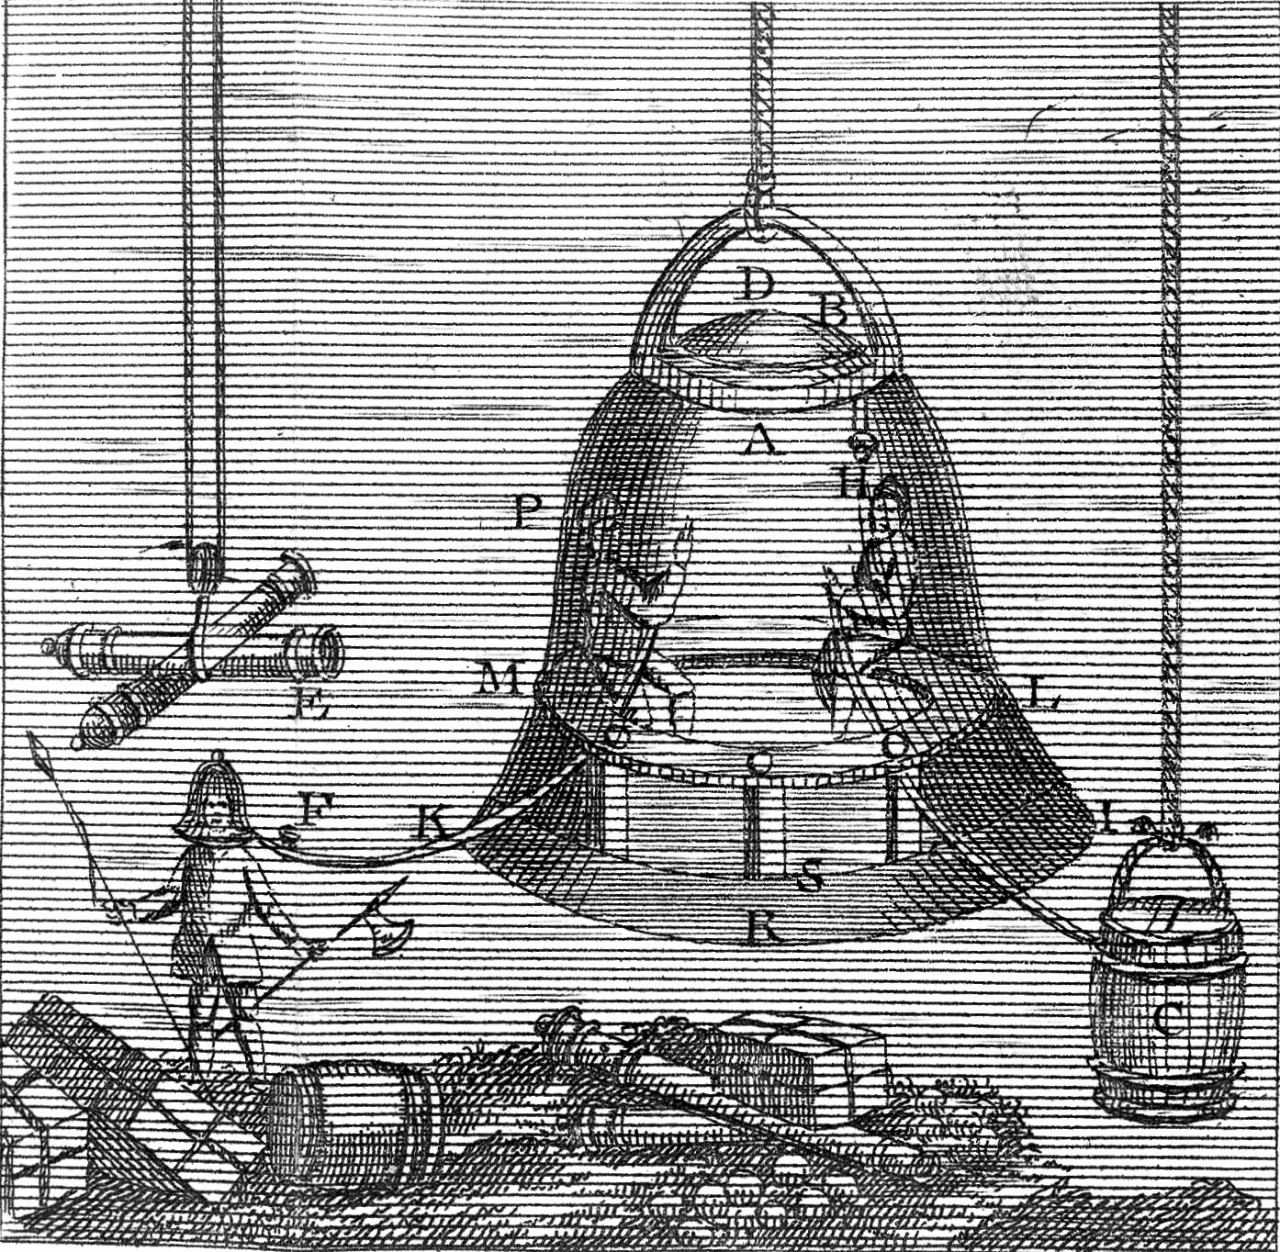 Gold diving bell. The strange and wonderful